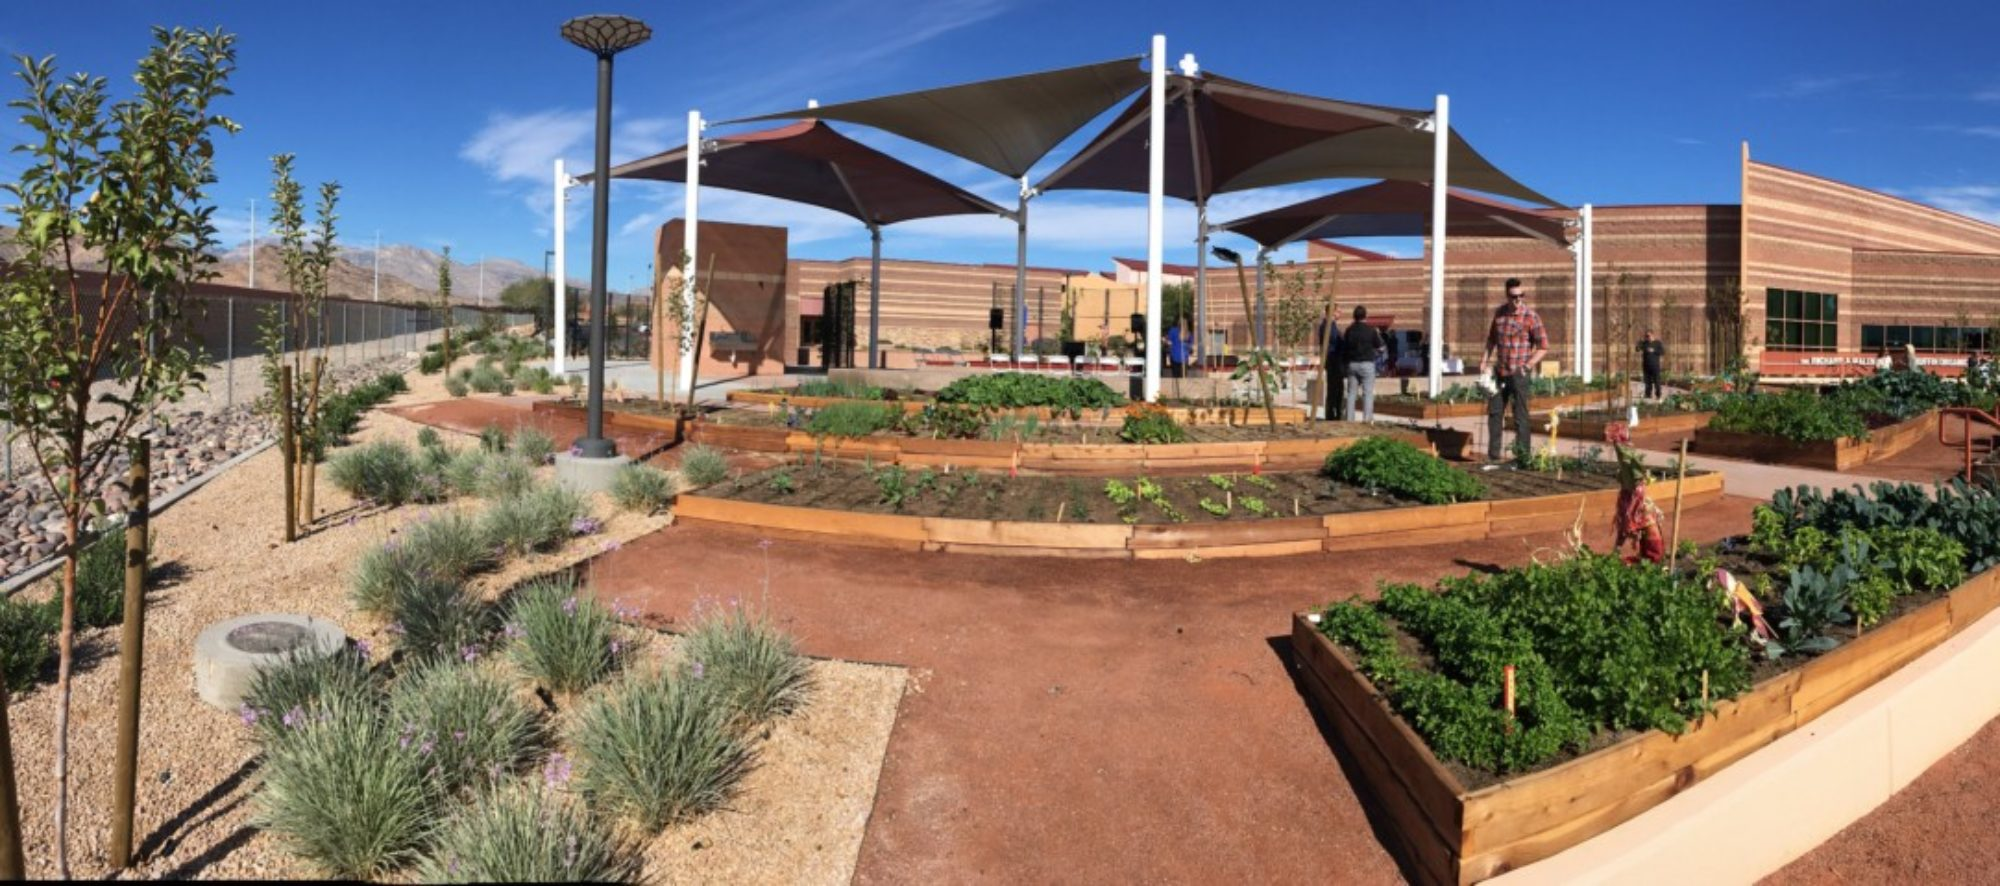 A panoramic view of the Ruffin Organic Gardens, Alexander Dawson School at Rainbow Mountain designed by LGA Architecture.